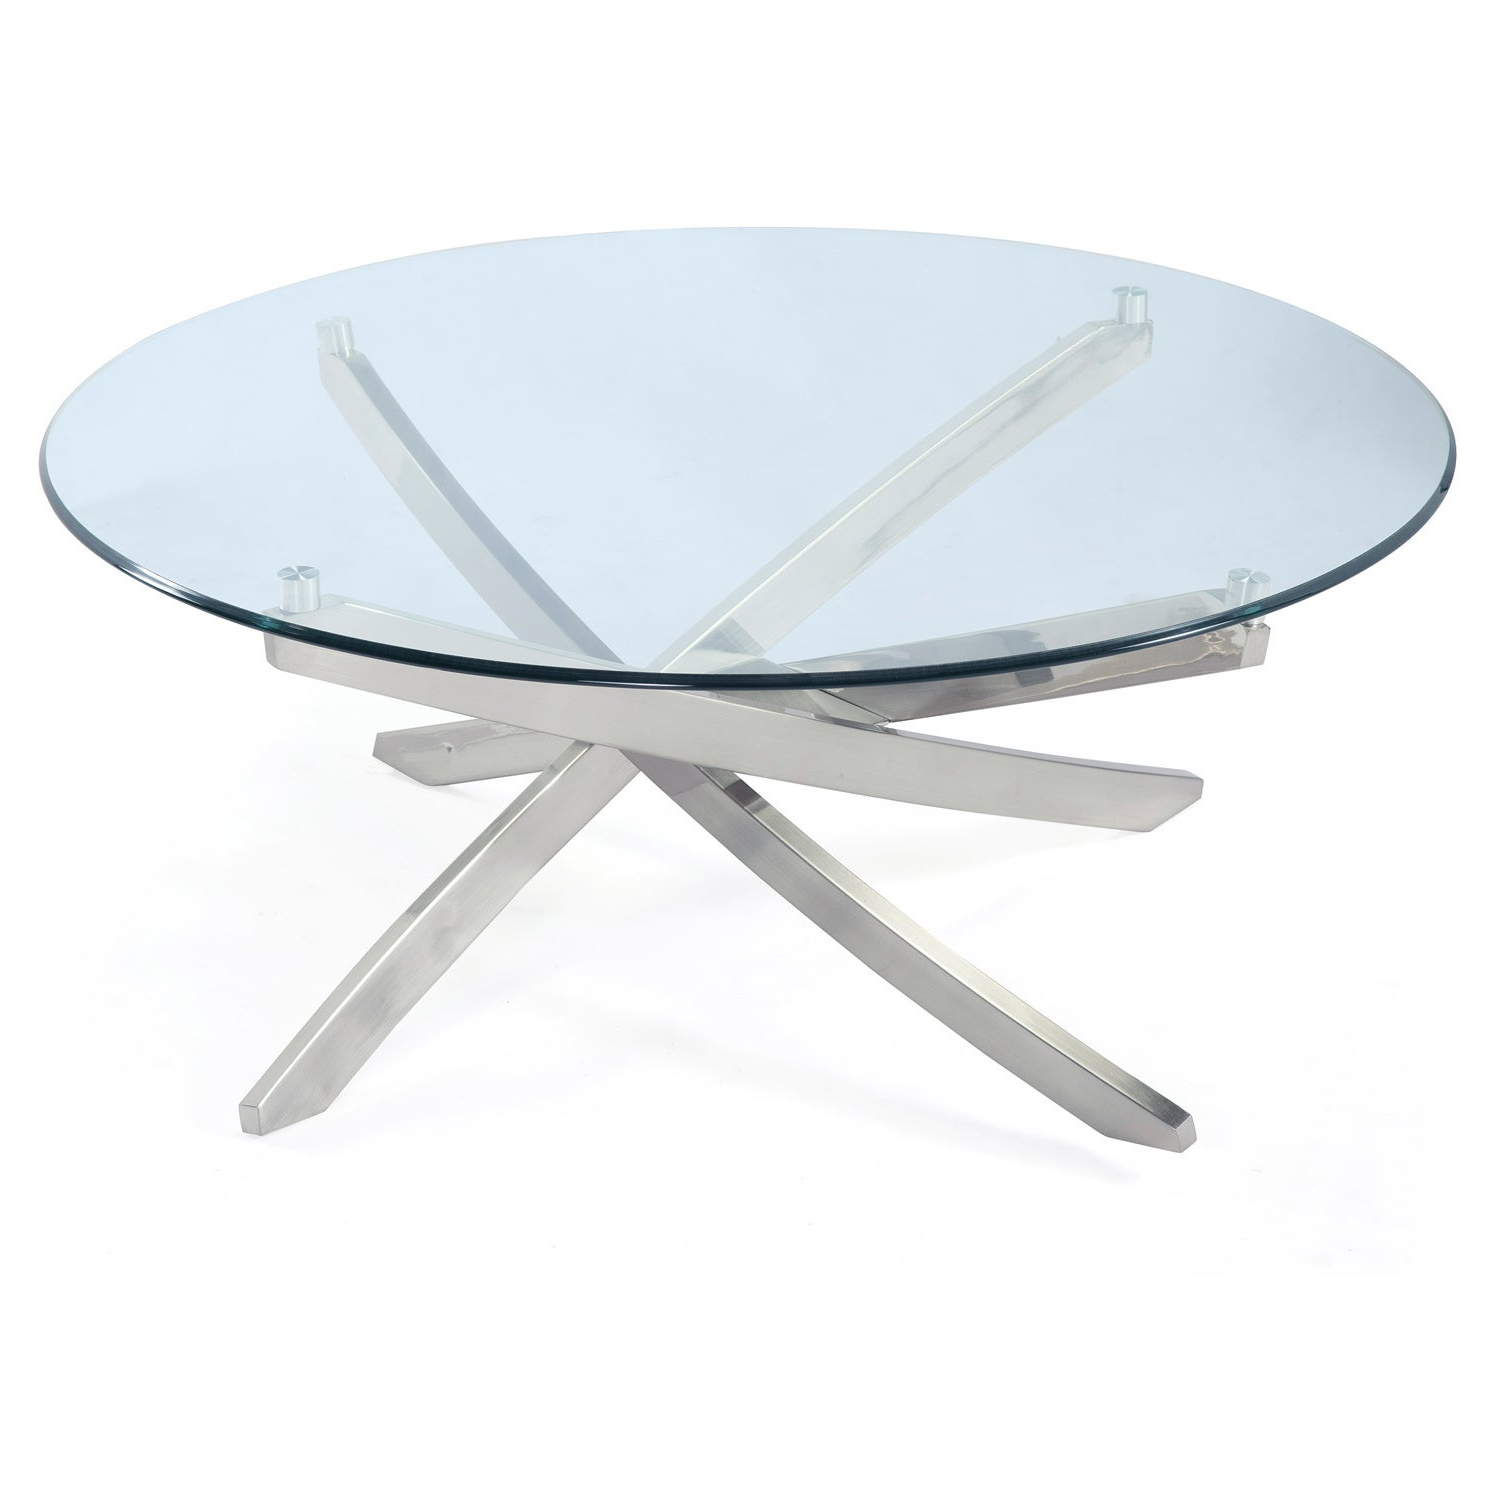 Widely Used Elowen Round Glass Coffee Tables Regarding Zila Contemporary Brushed Nickel Round Coffee Table With Glass Top (View 19 of 20)